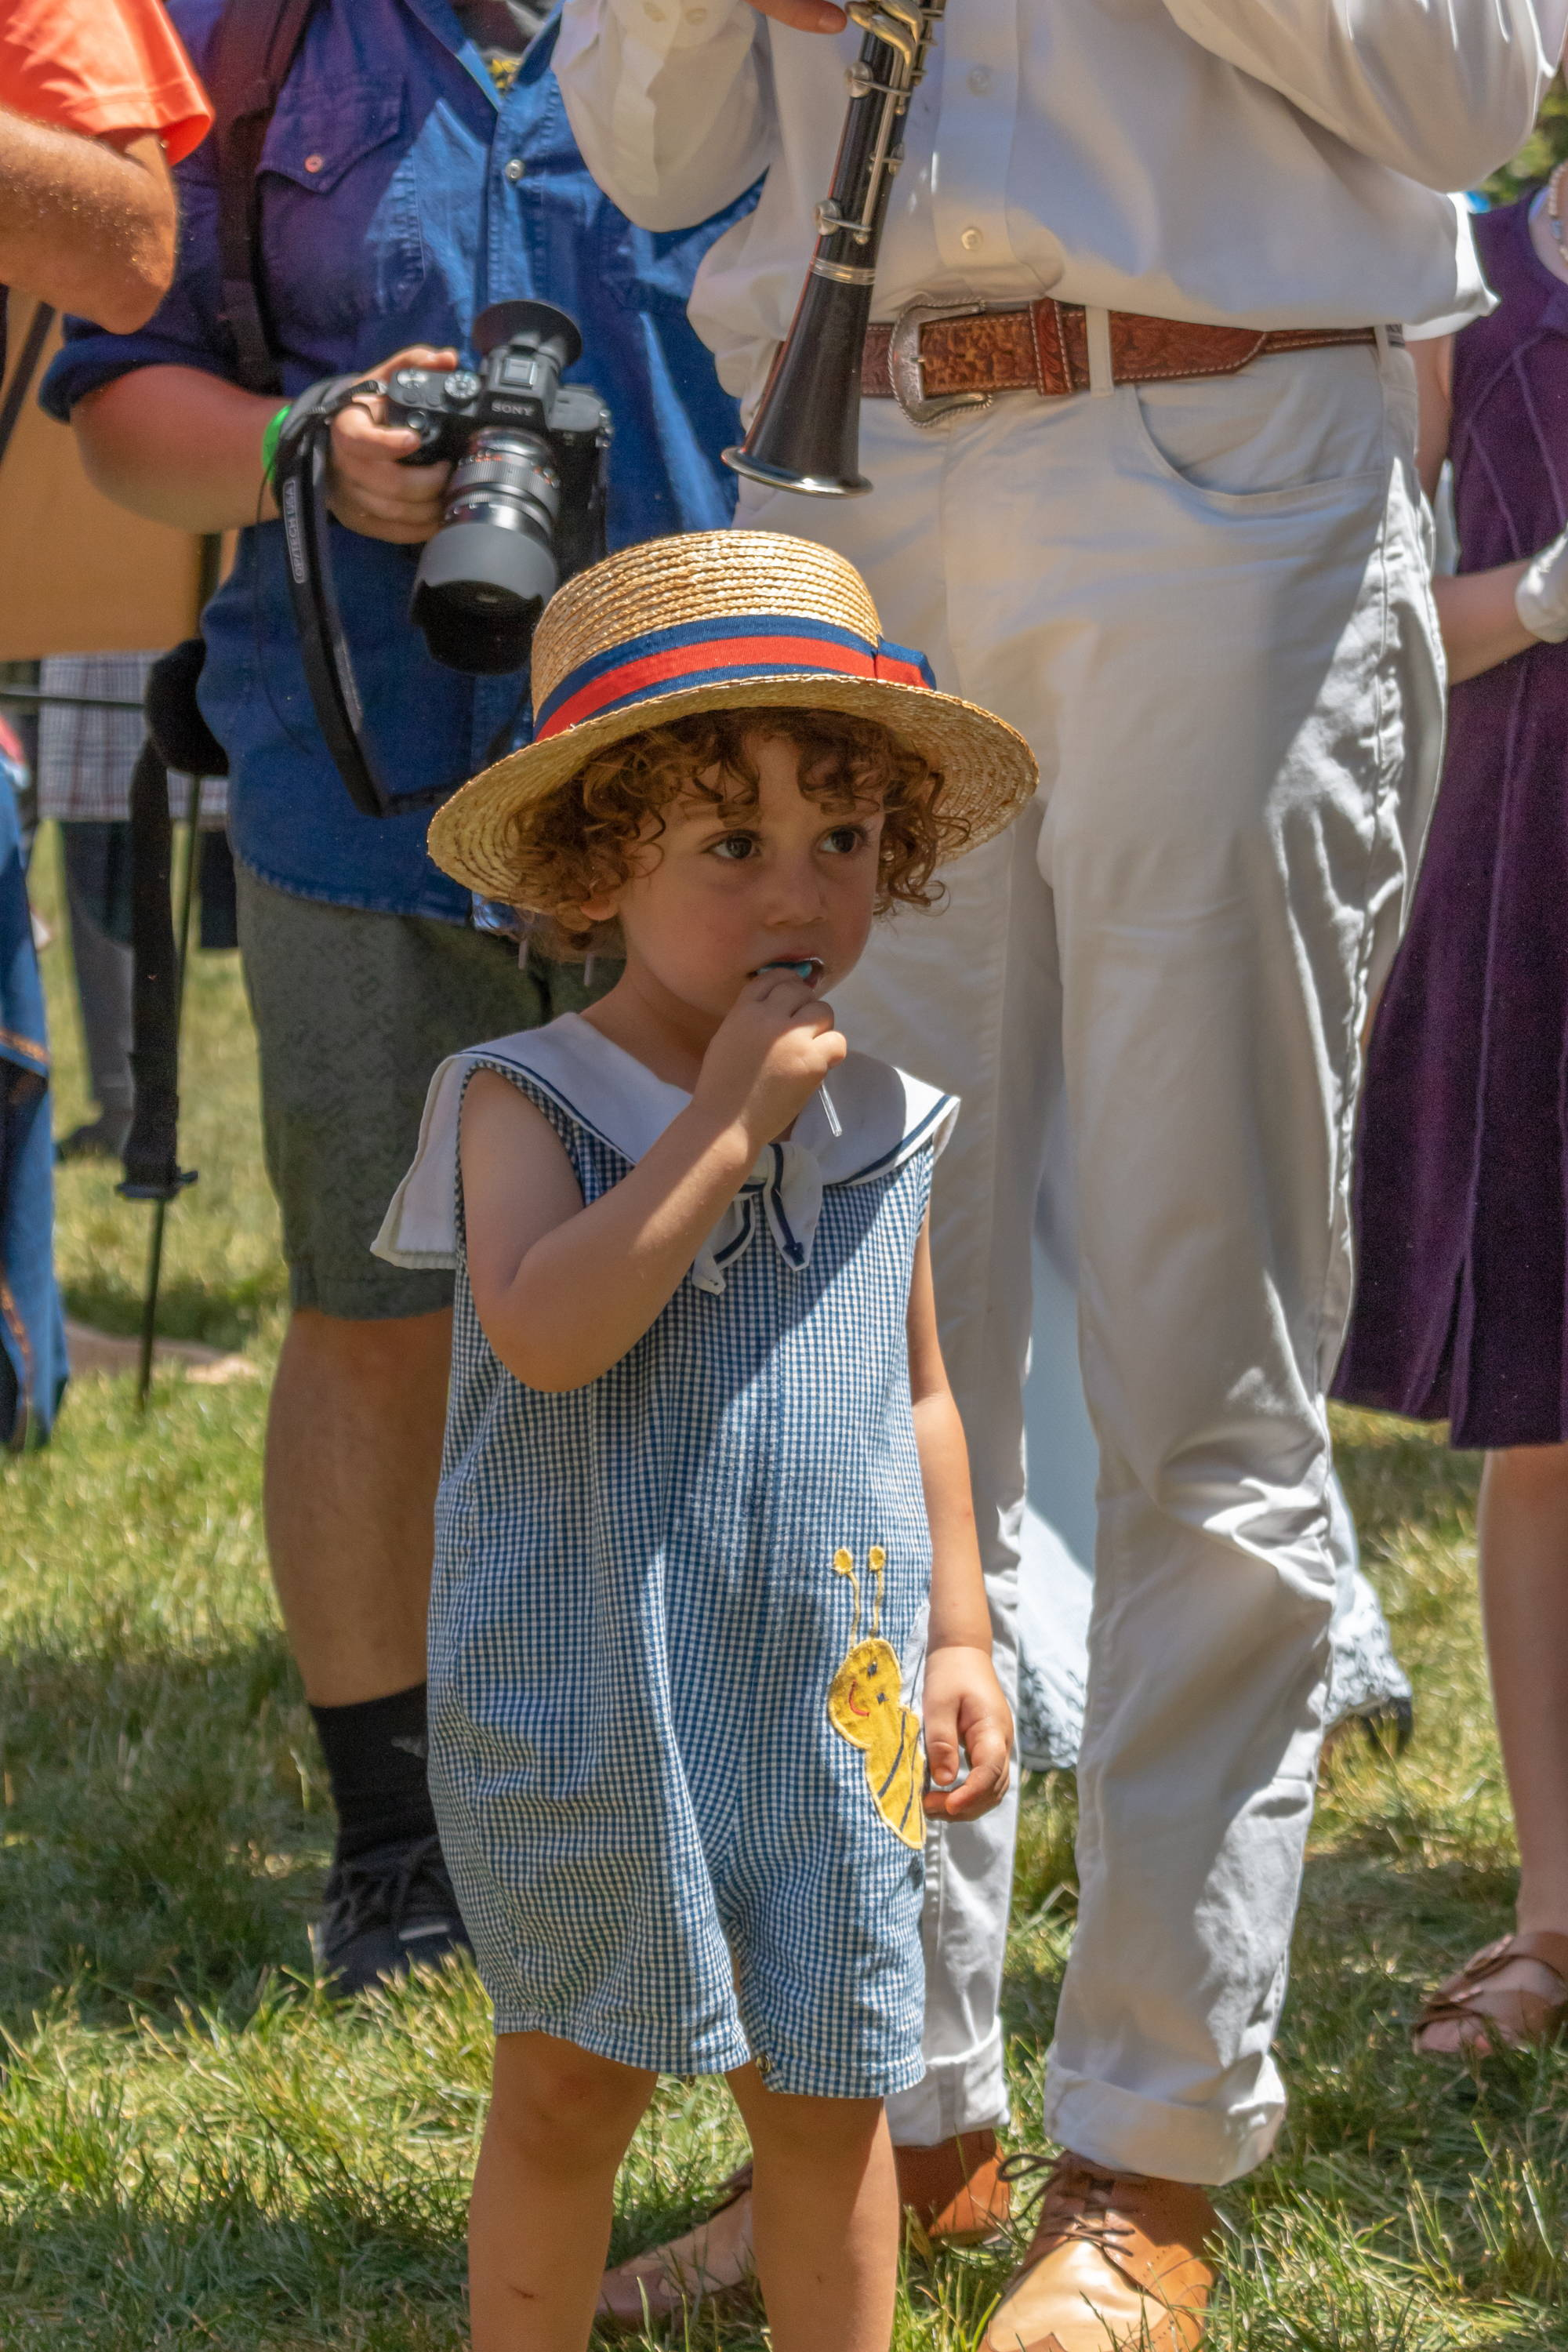 Childrens Parade at Jazz Age Lawn Party Highlights Vintage-Inspired Fashion Trends